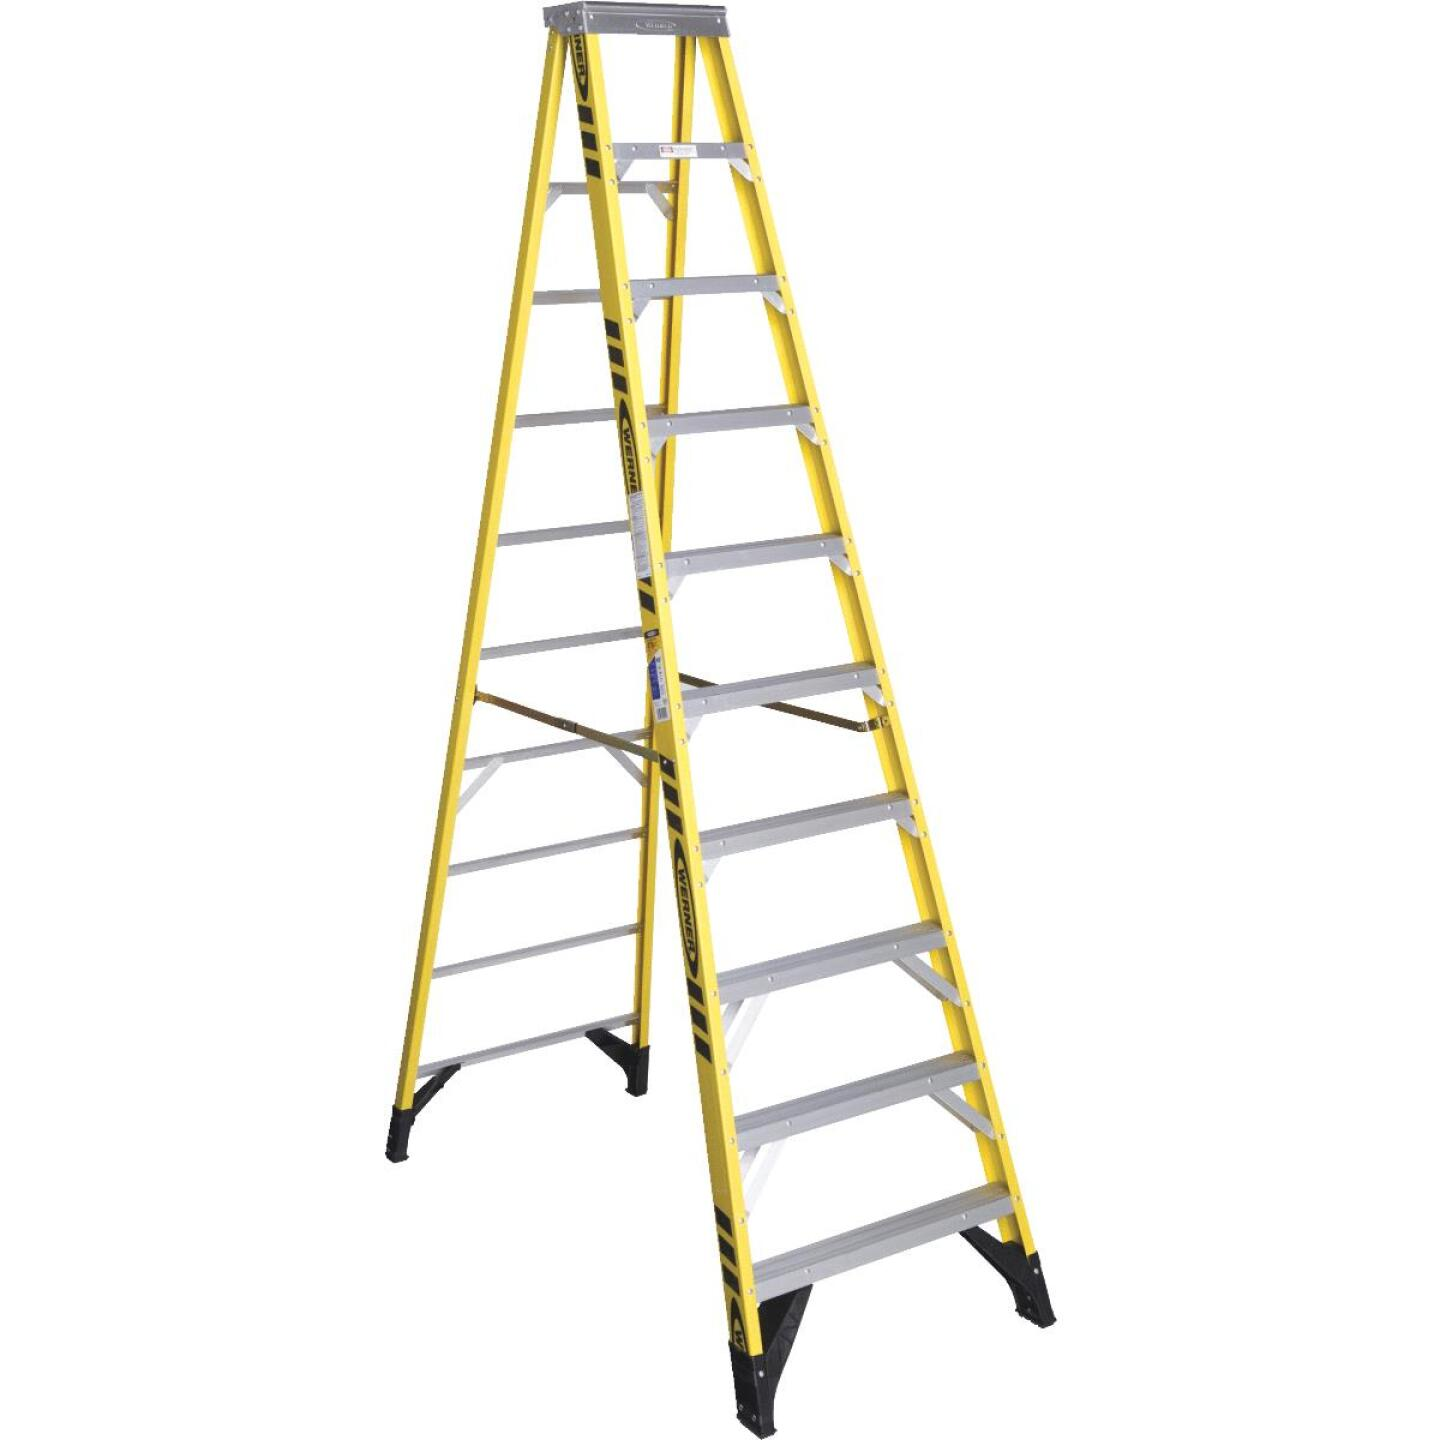 Werner 10 Ft. Fiberglass Step Ladder with 375 Lb. Load Capacity Type IAA Ladder Rating Image 1